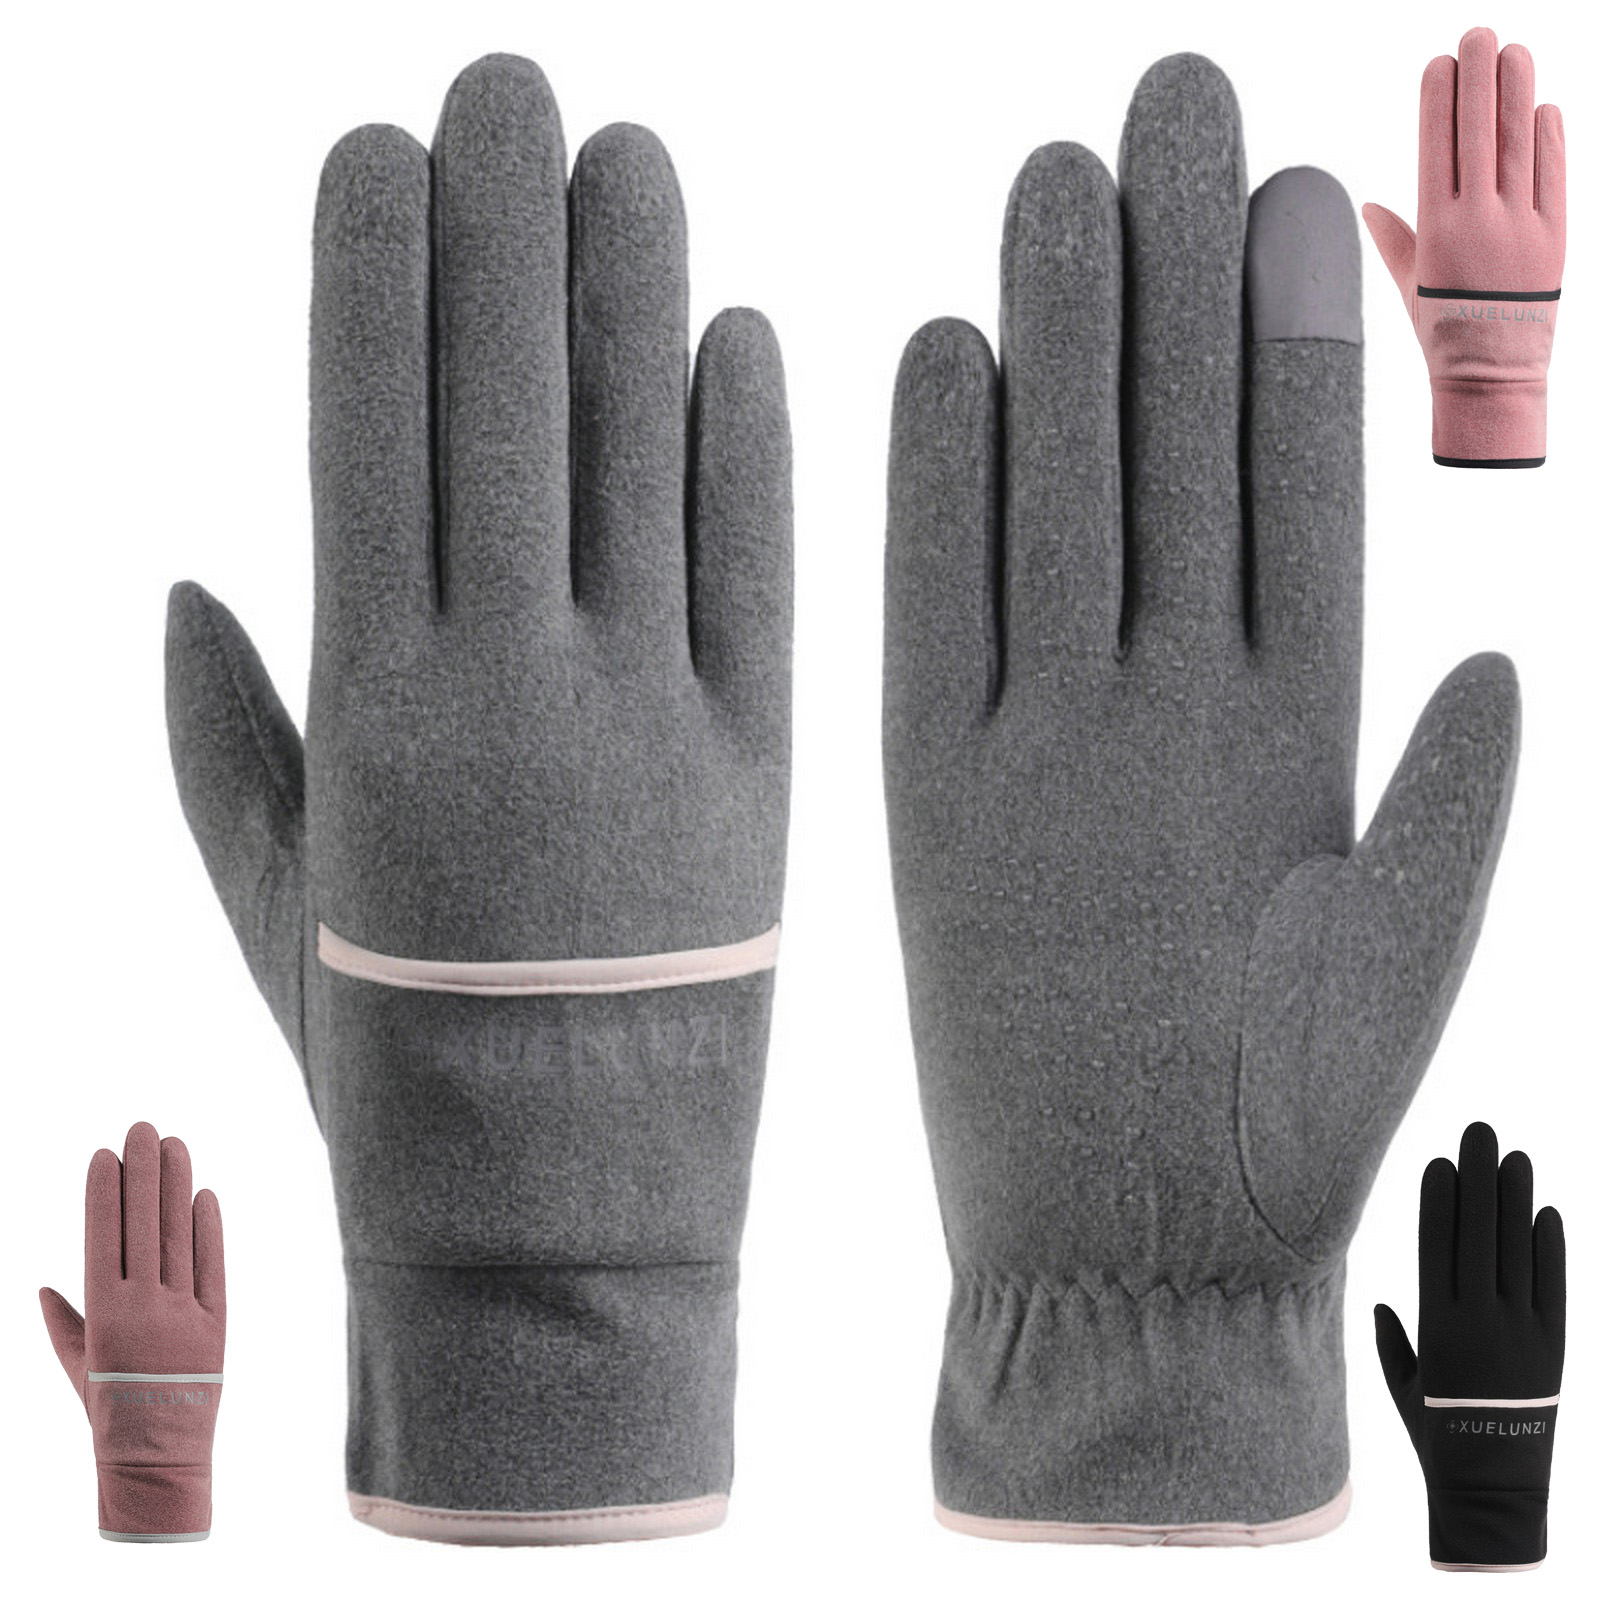 Winter women's warm gloves for fall and winter outdoor driving windproof riding non-slip waterproof skiing touch screen